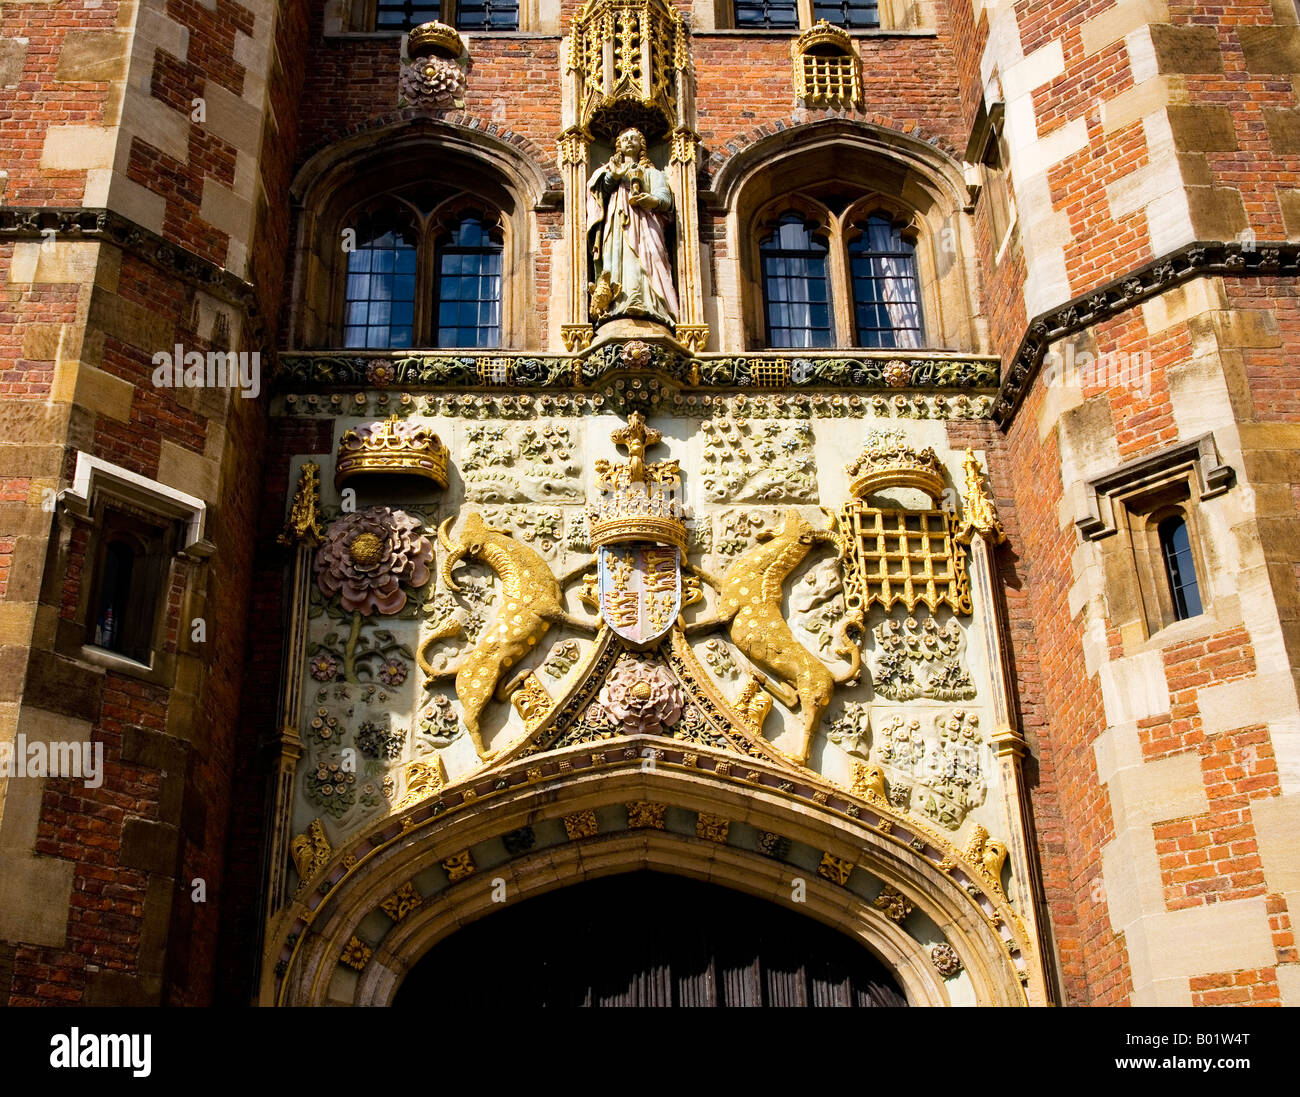 The Front Gate, St.John's College, Cambridge. The carving is of the coat of arms of the Foundress, Lady Margaret - Stock Image